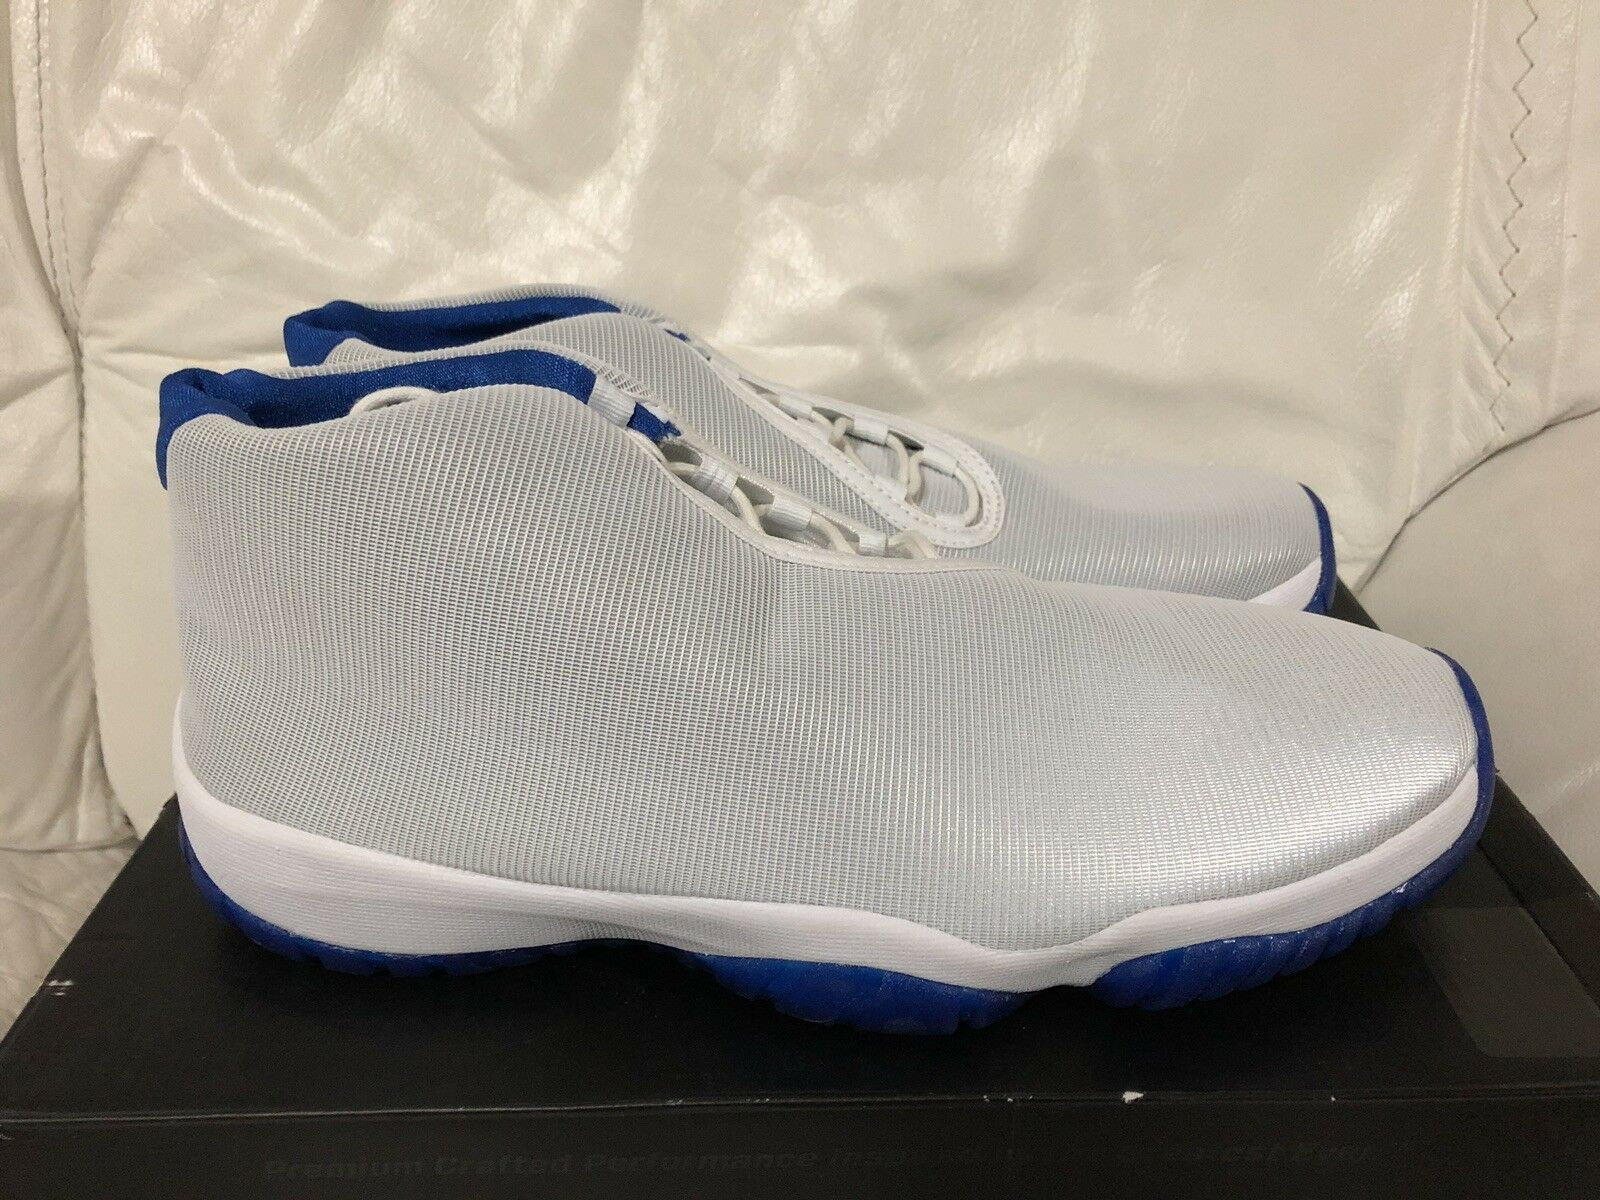 018b9a5f6a7 Nike Air Jordan Future Sport bluee White Black Men's 12 New Size  nxrvkz798-Athletic Shoes